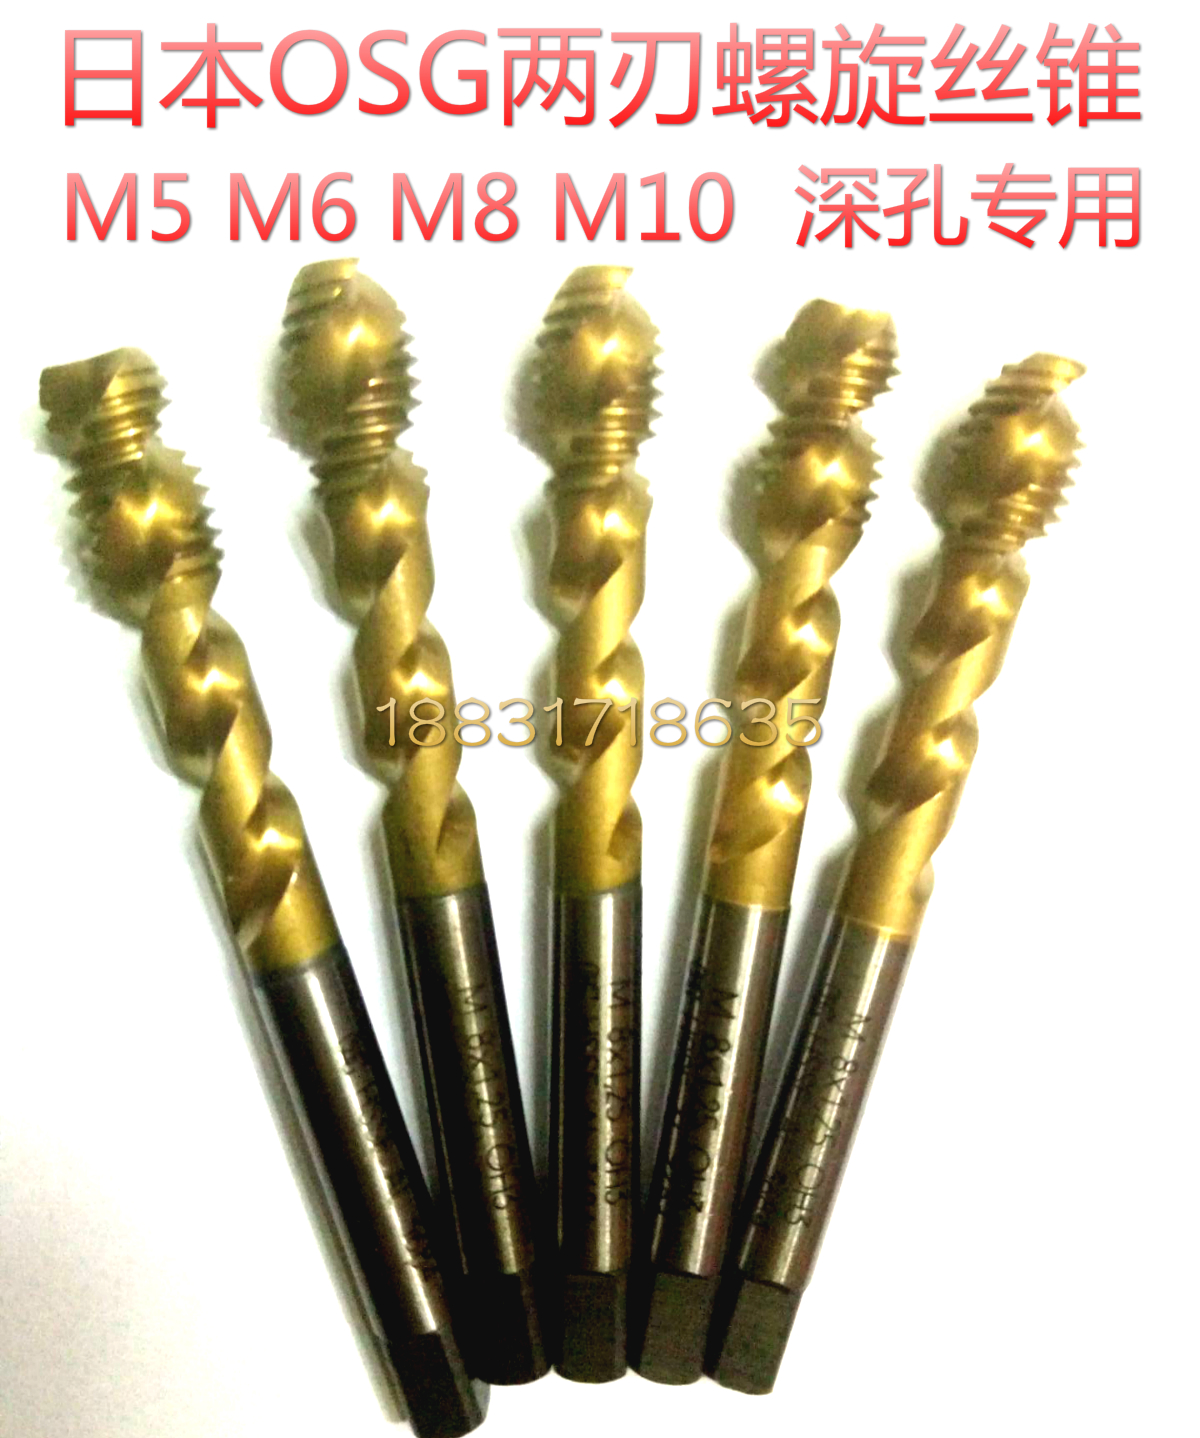 9.5 of the new imported Japanese OSG/ titanium wire tapping screw tap M3M4M5M6M8M10M12M14M16